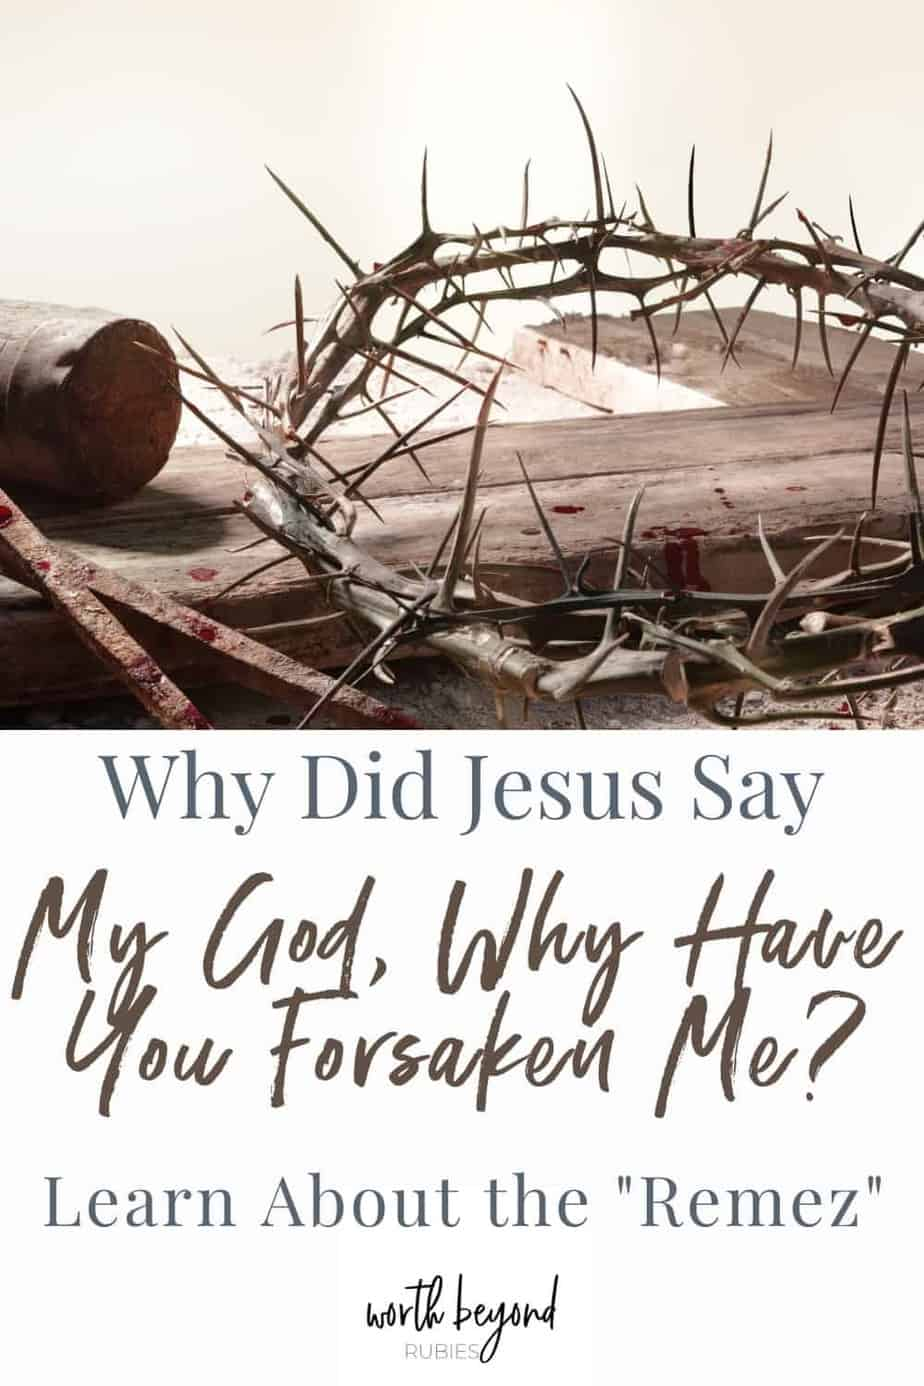 An image of a crown of thorns lying on the wood of a cross next to two nails and a hammer and text that says Why Did Jesus Say My God, Why Have You Forsaken Me? - Learn About the Remez